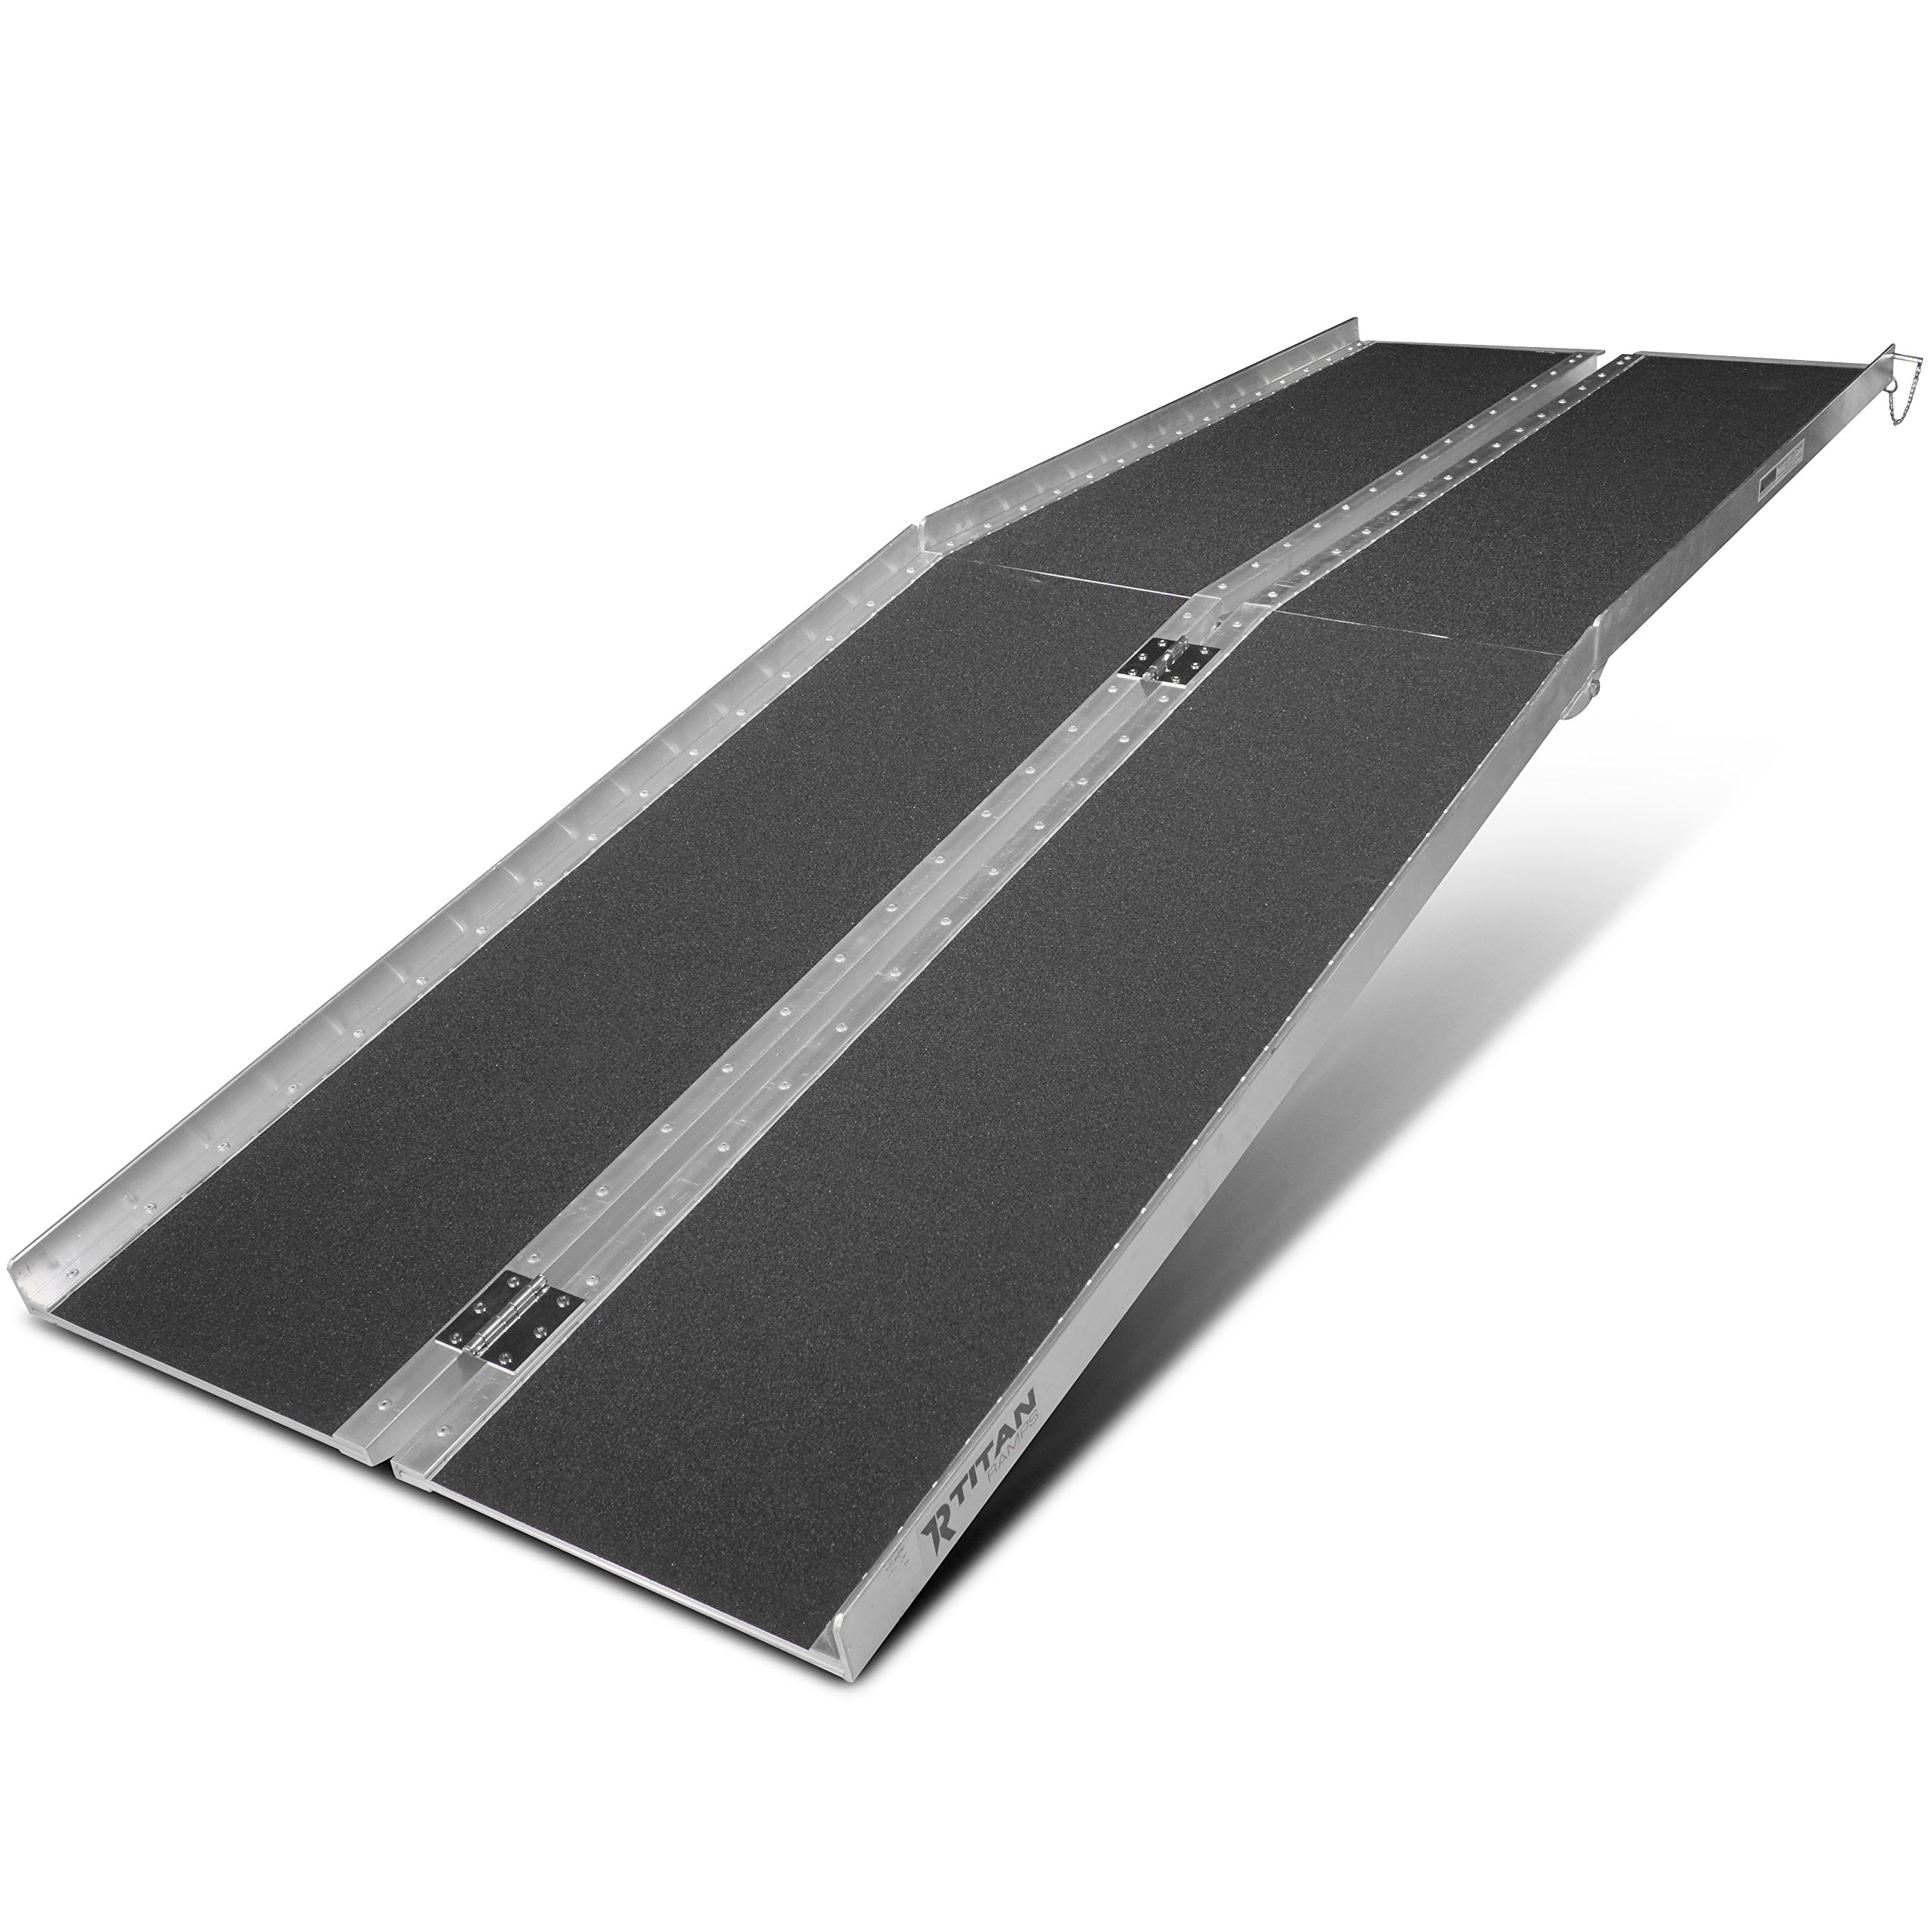 Titan Ramps 8' ft Aluminum Multifold Wheelchair Scooter Mobility Ramp portable 96'' (MF8)